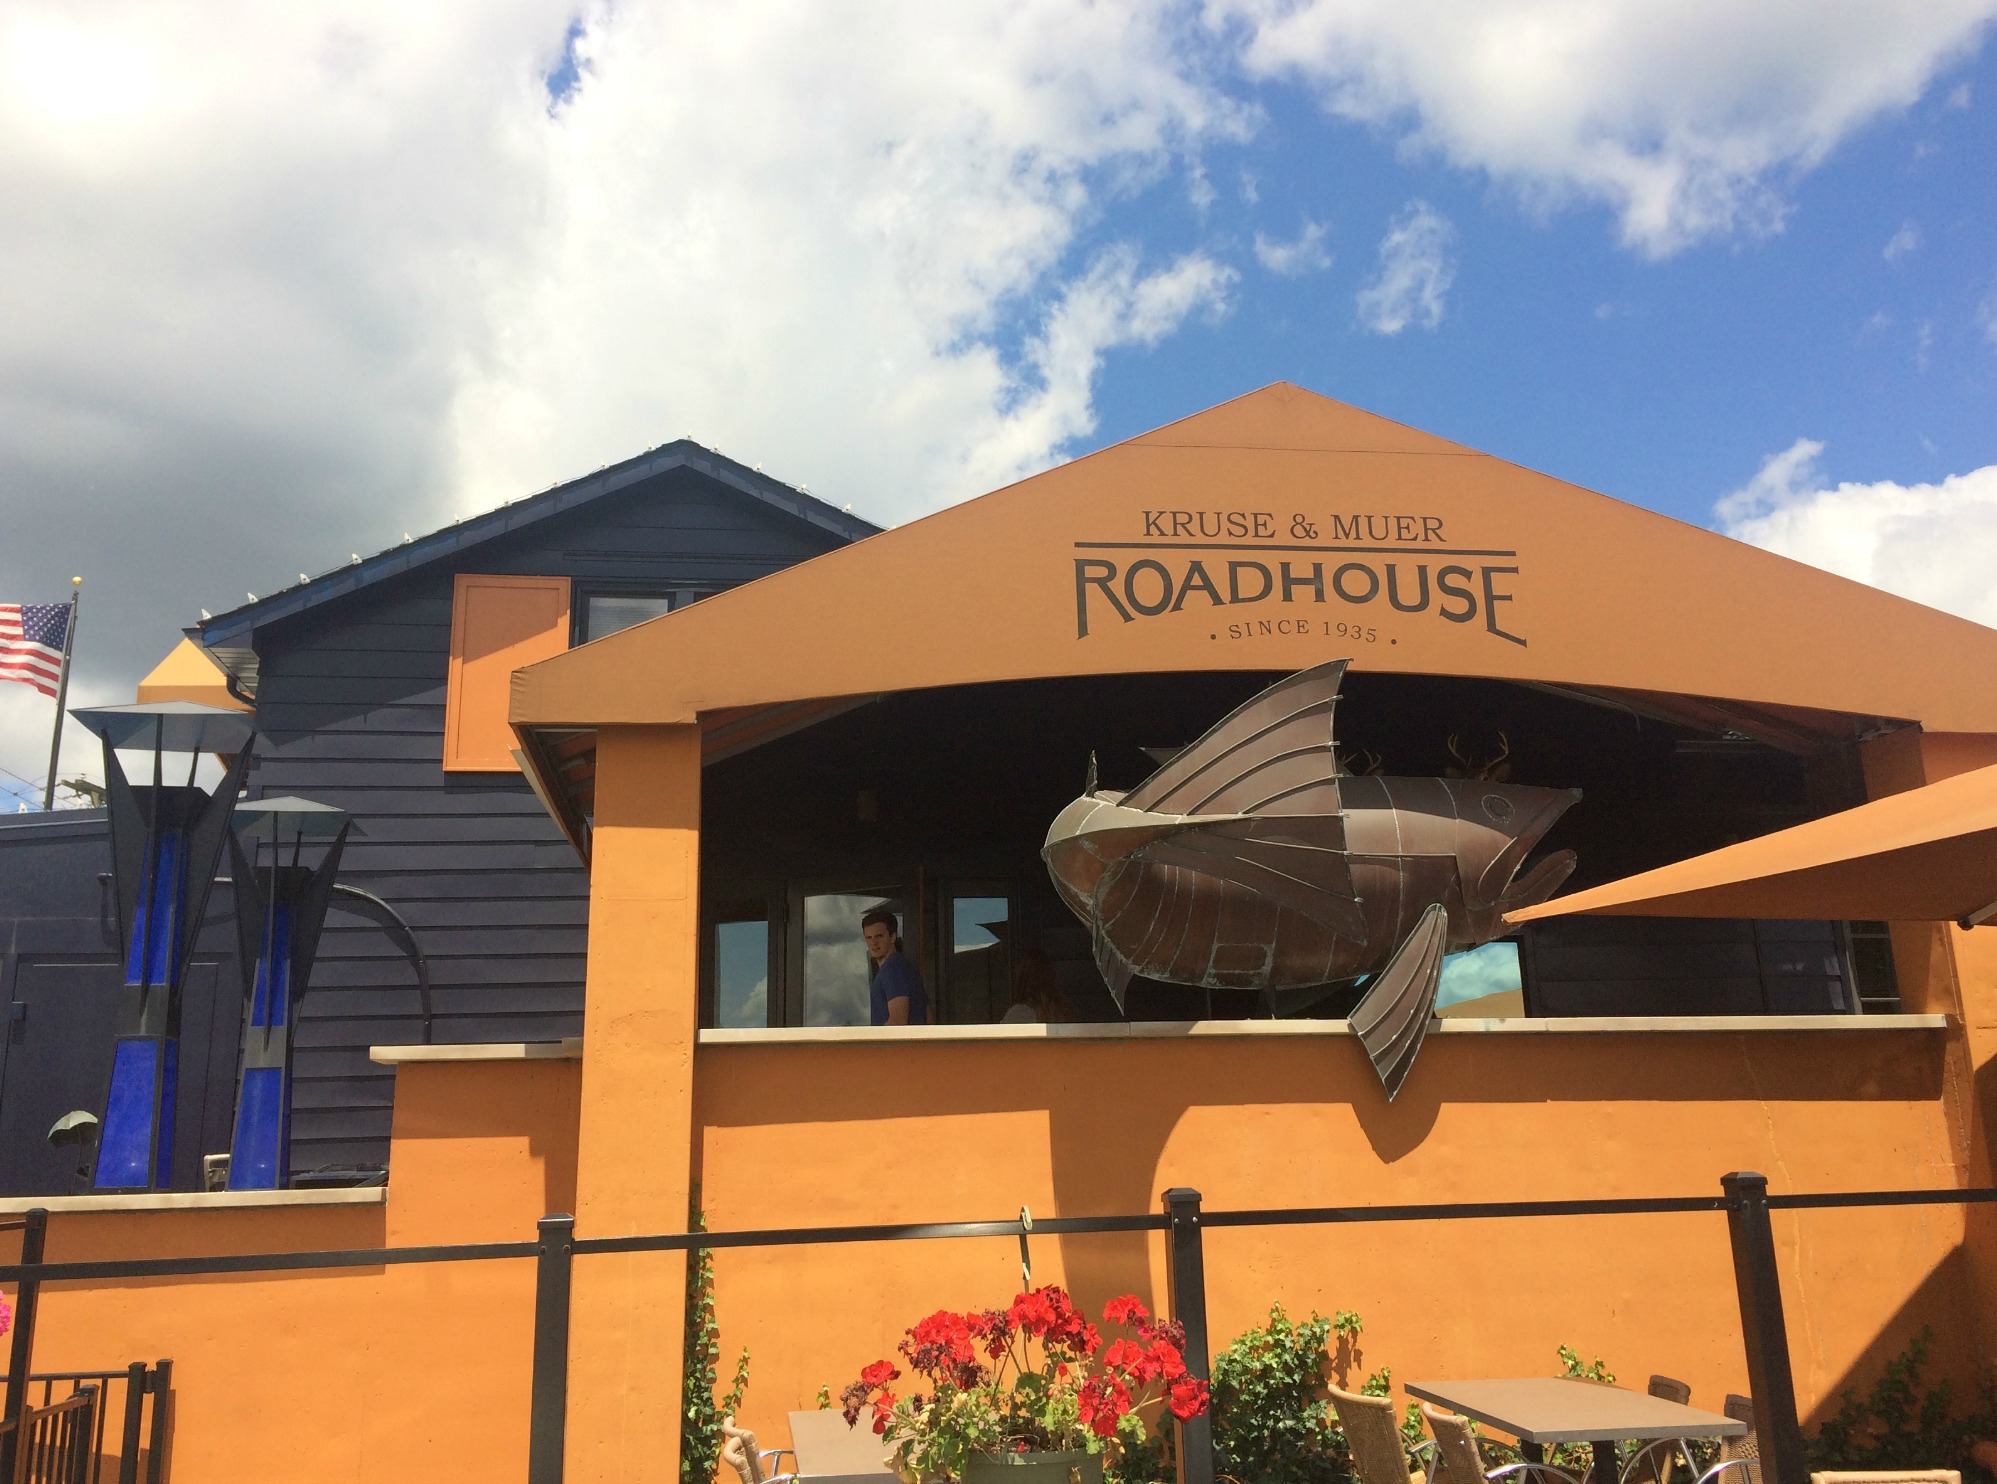 Kruse & Meur Roadhouse Lake Orion